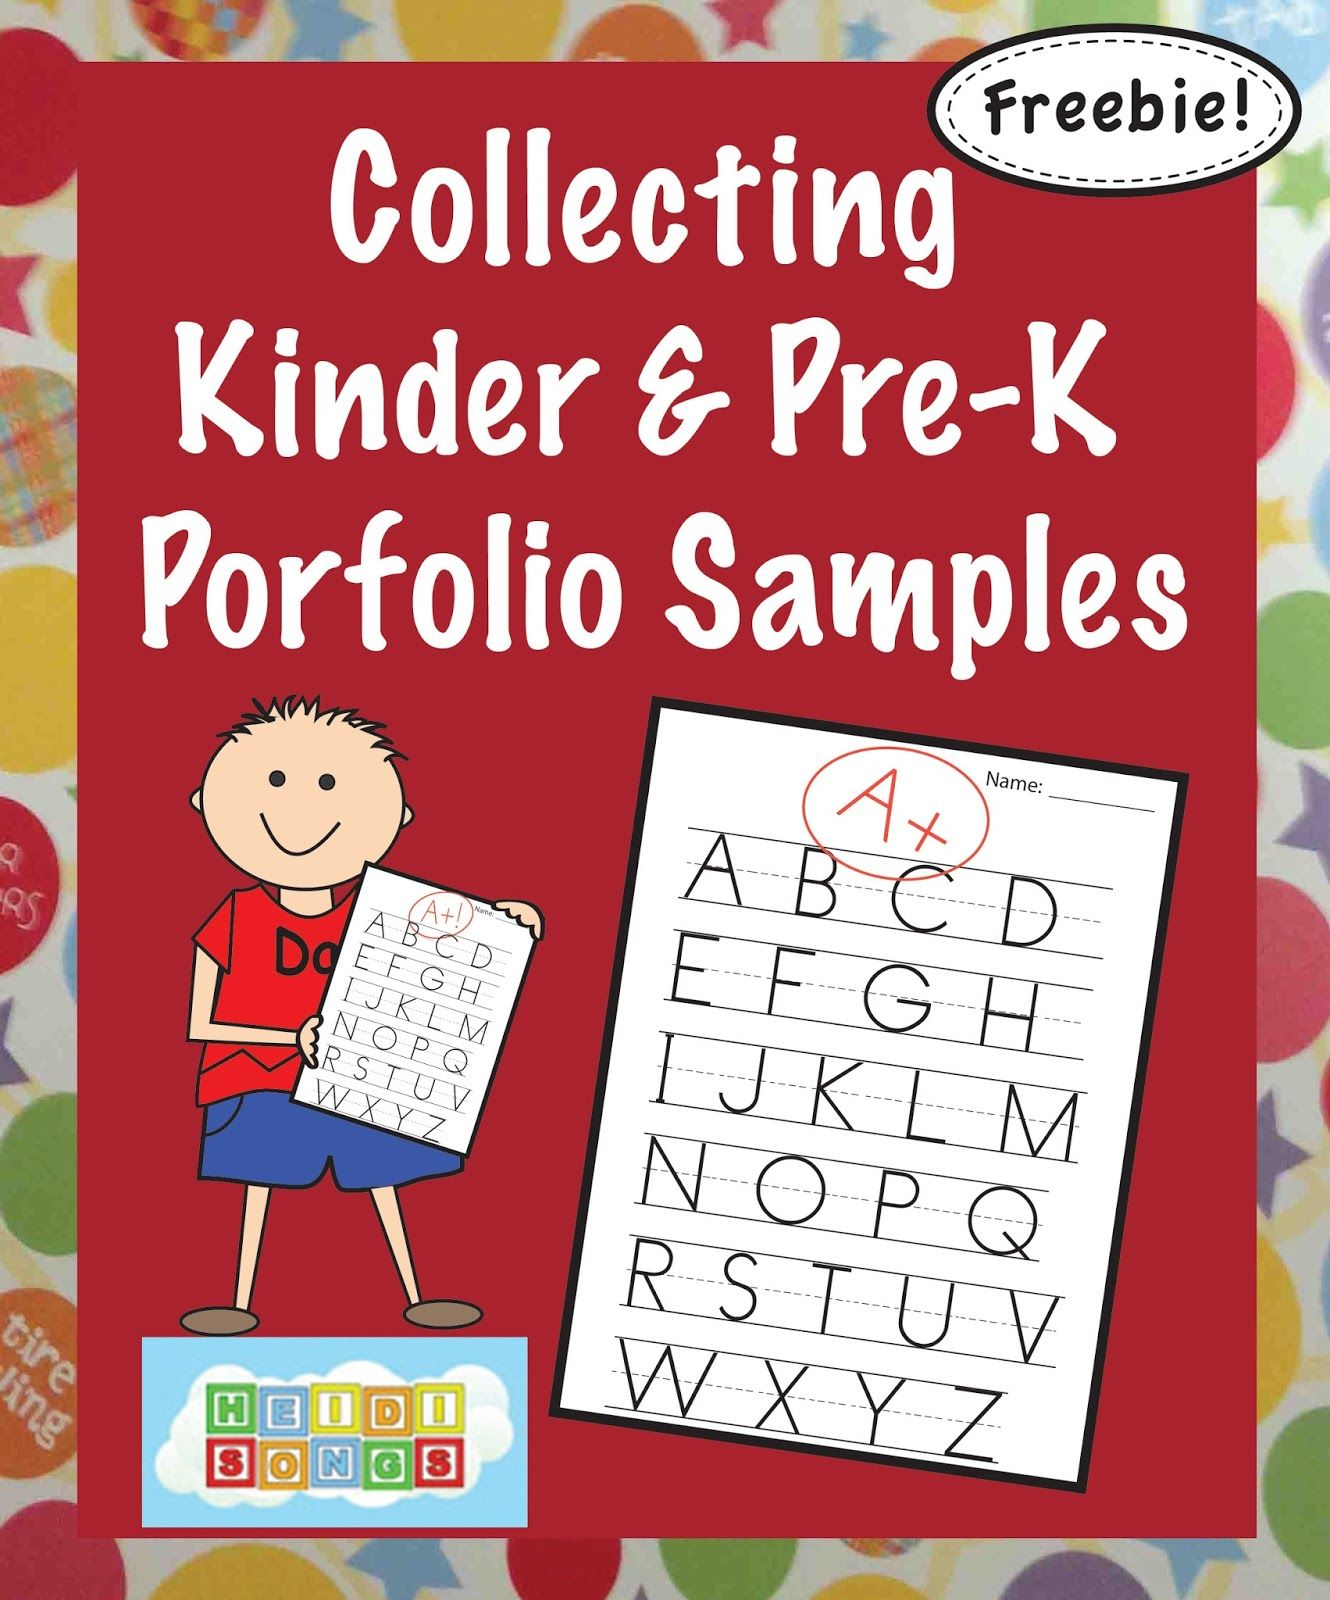 Collecting Kindergarten Portfolio Samples, And The What To